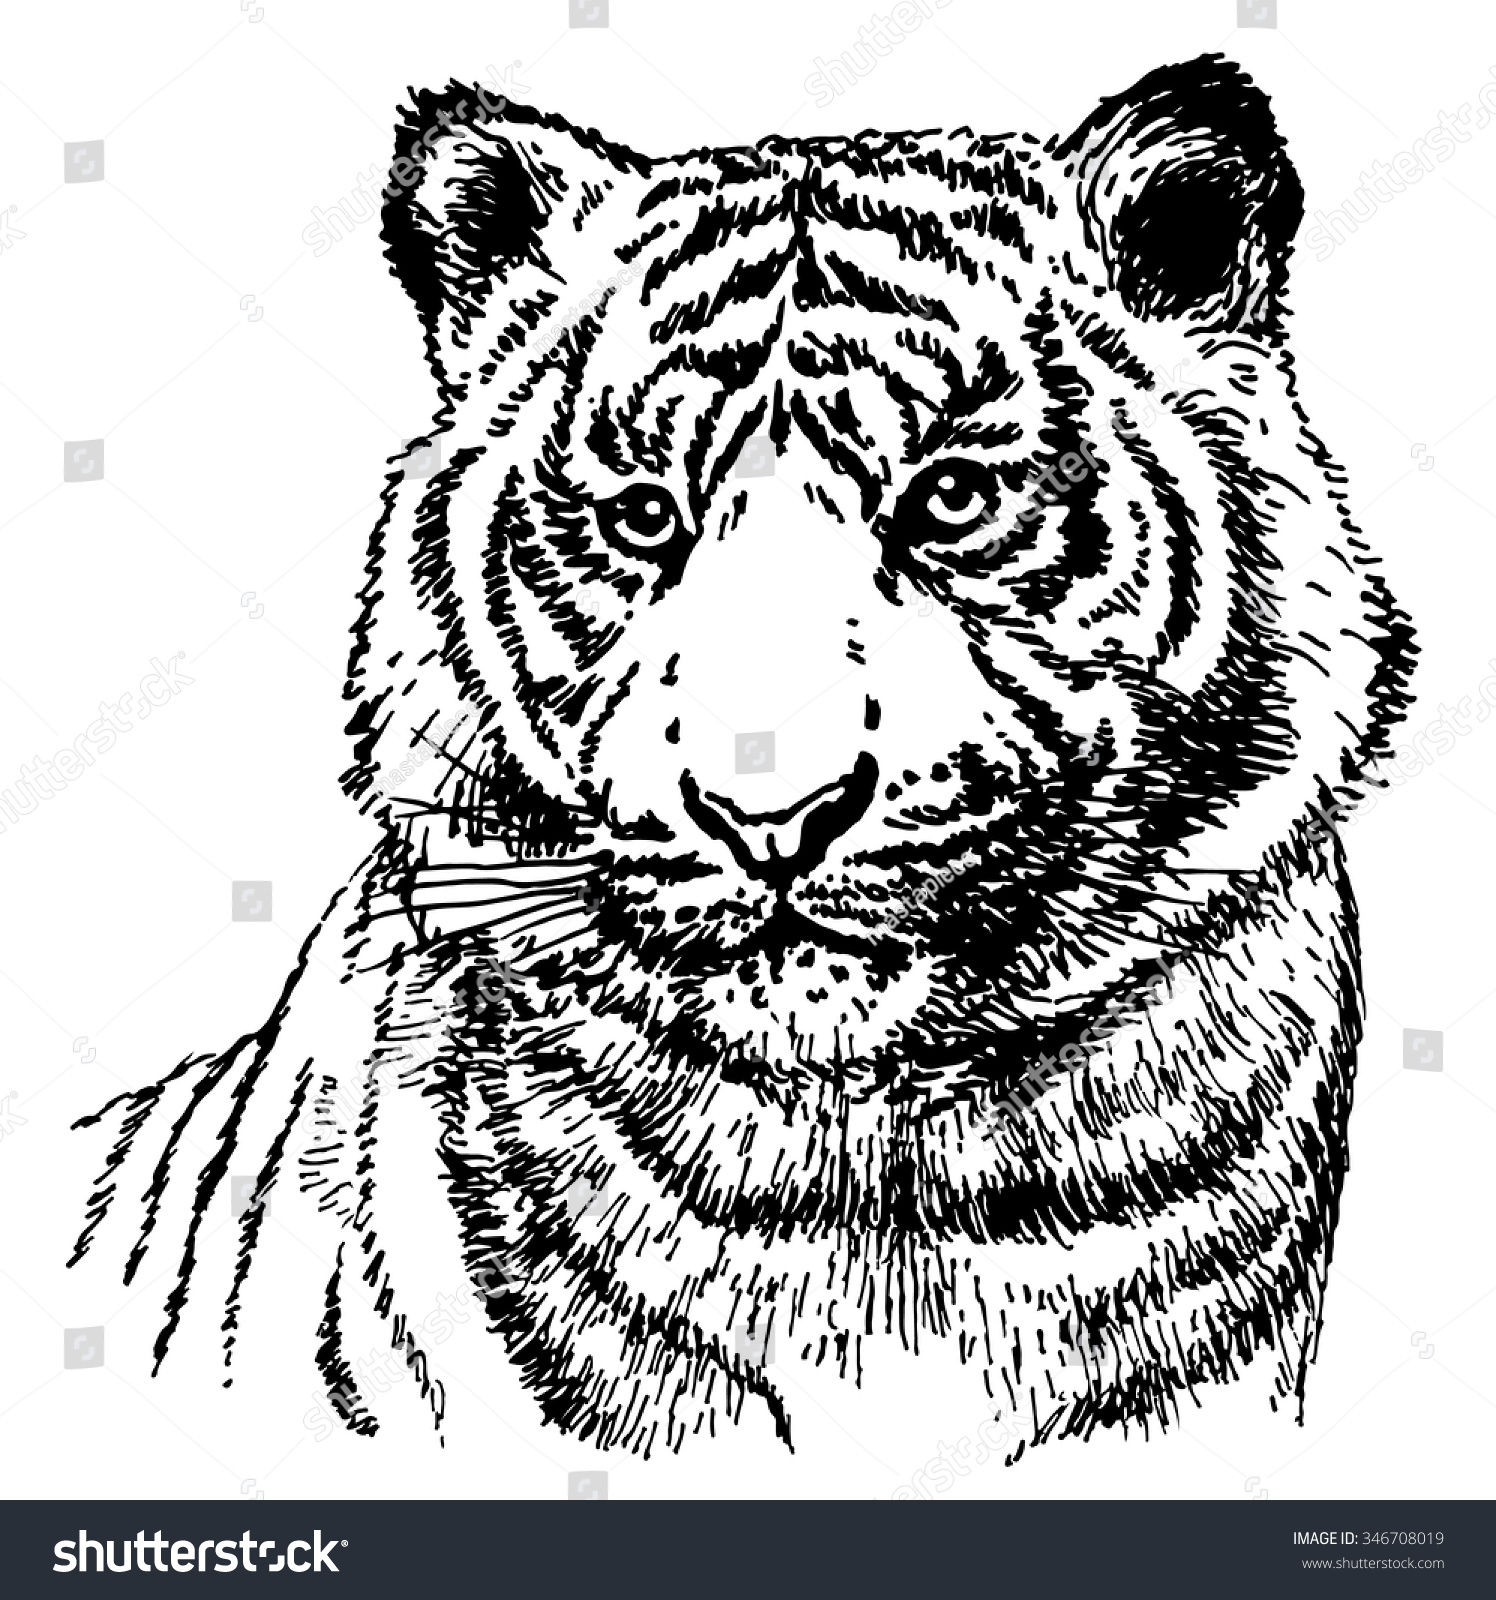 malayan tiger drawing - photo #14